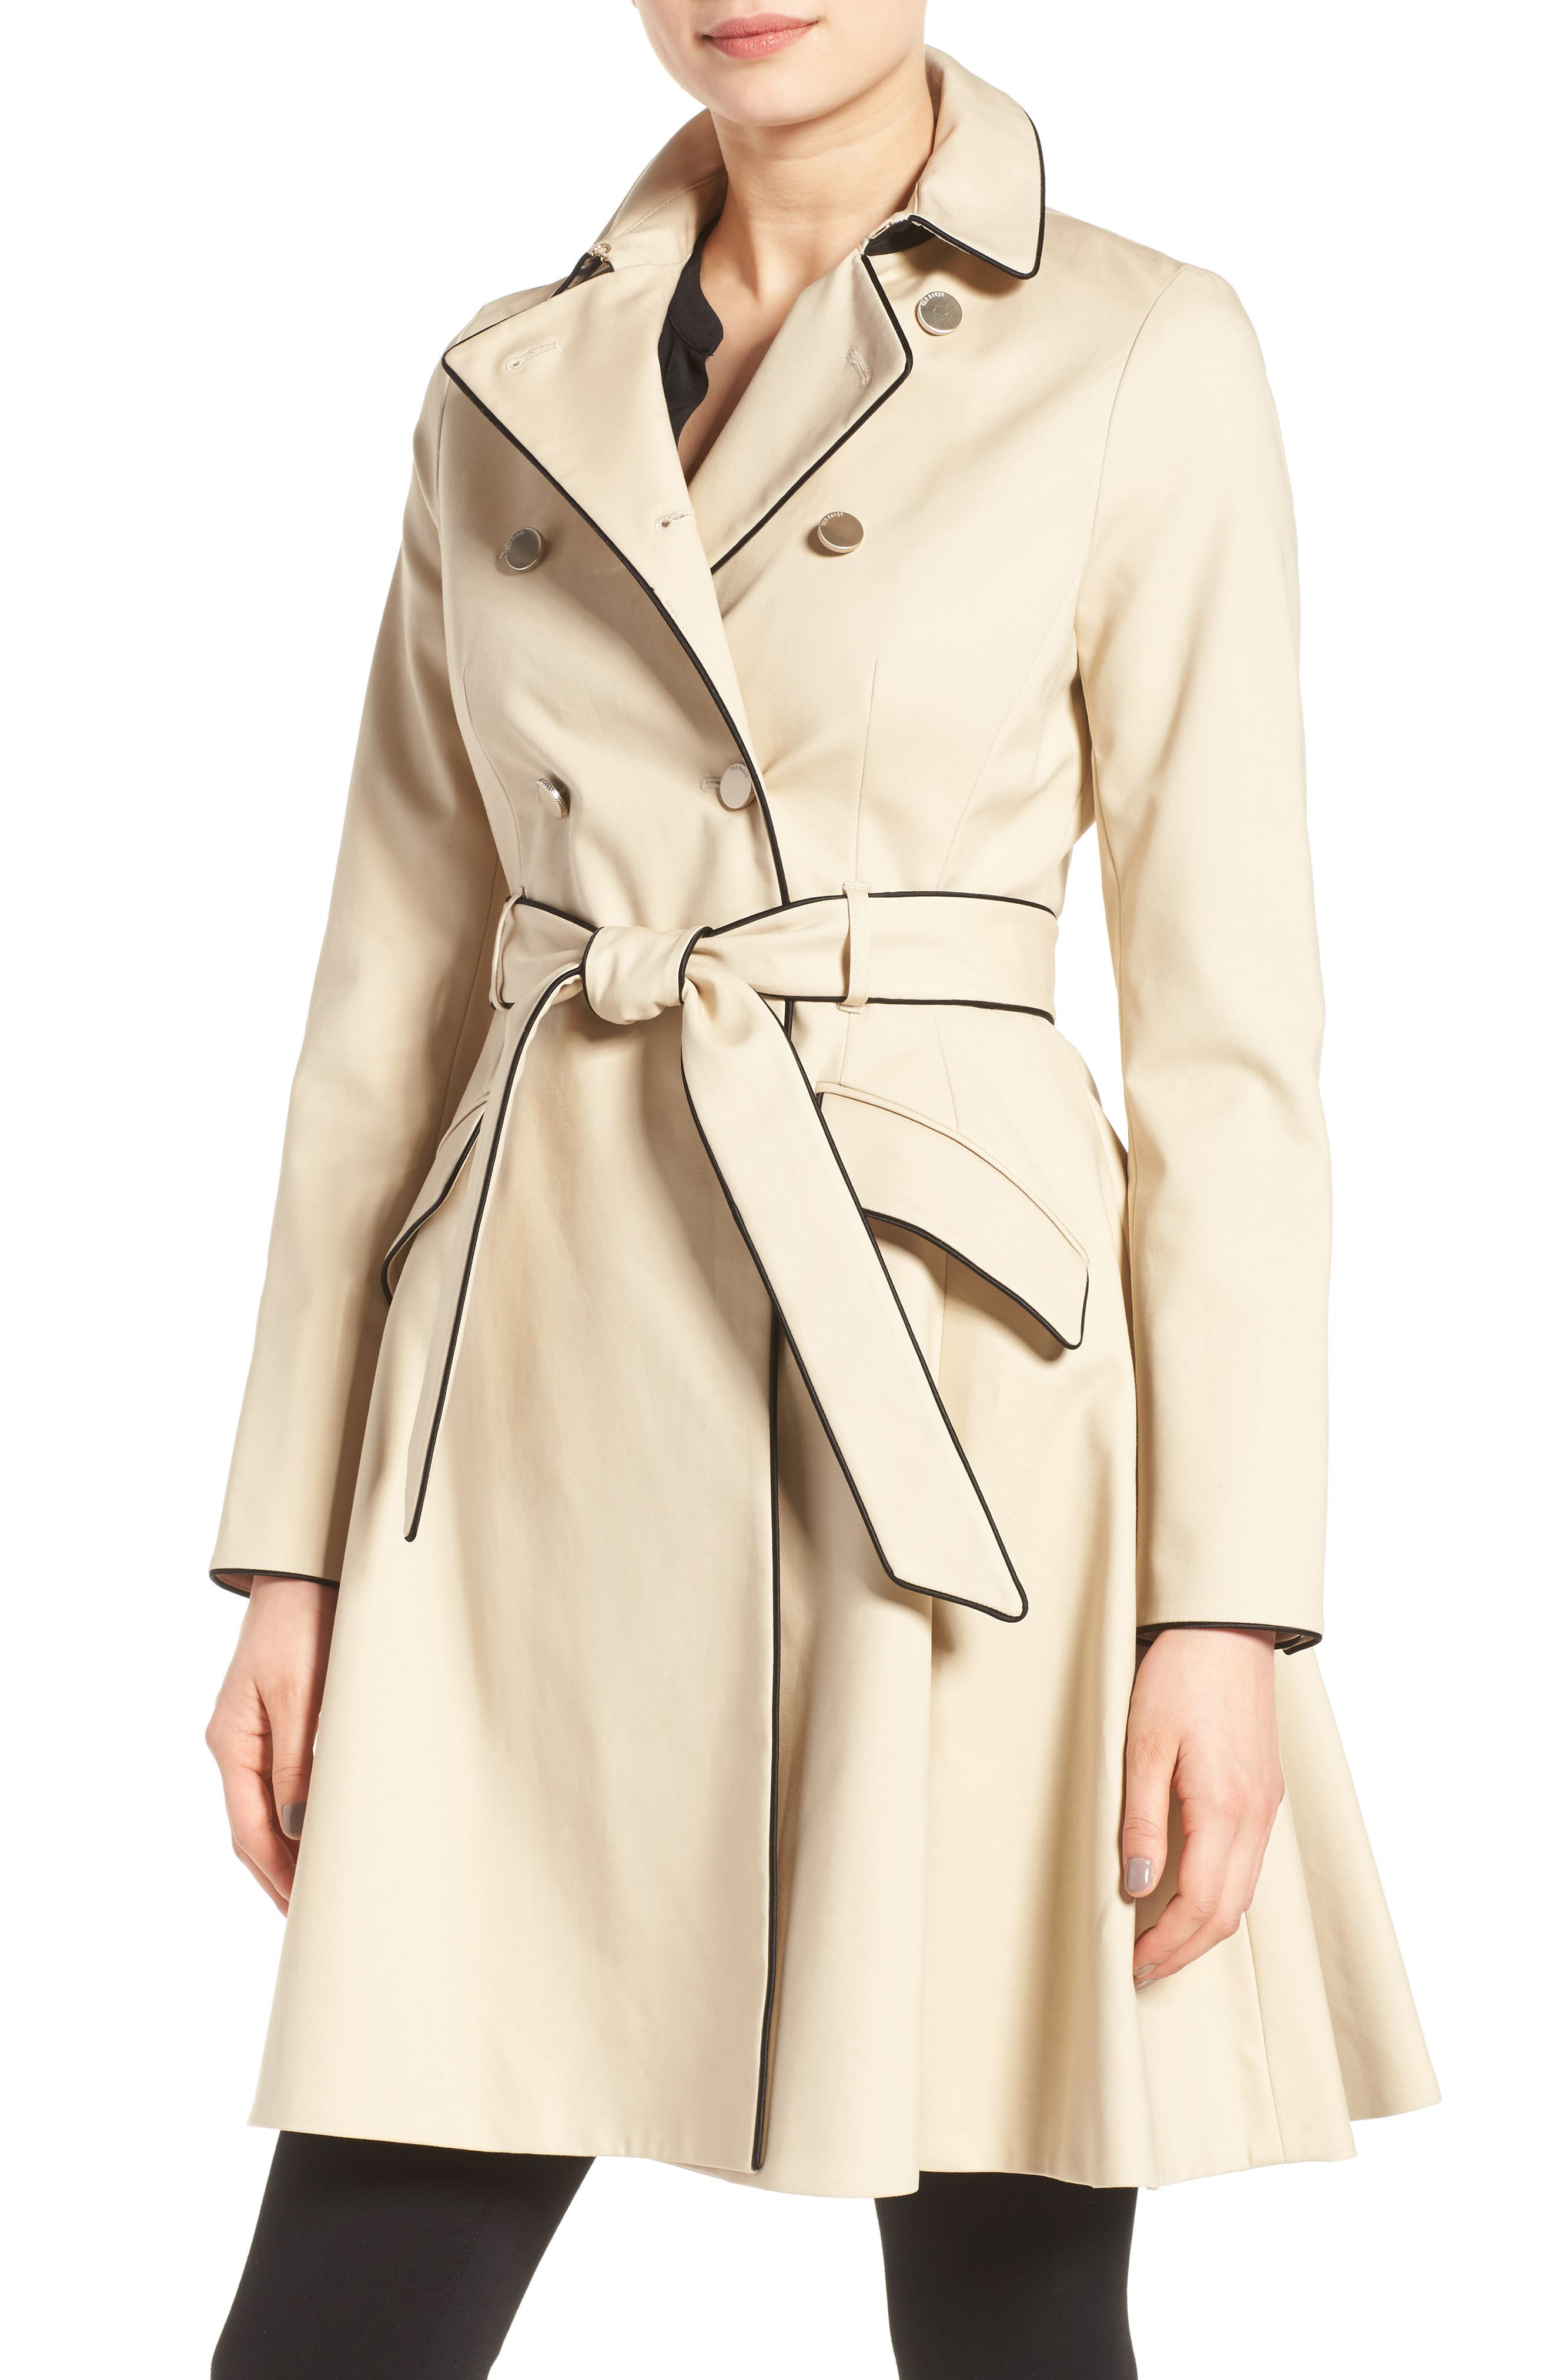 Alternate Image 1 Selected - Ted Baker London Piped Belted A-Line Macintosh Coat